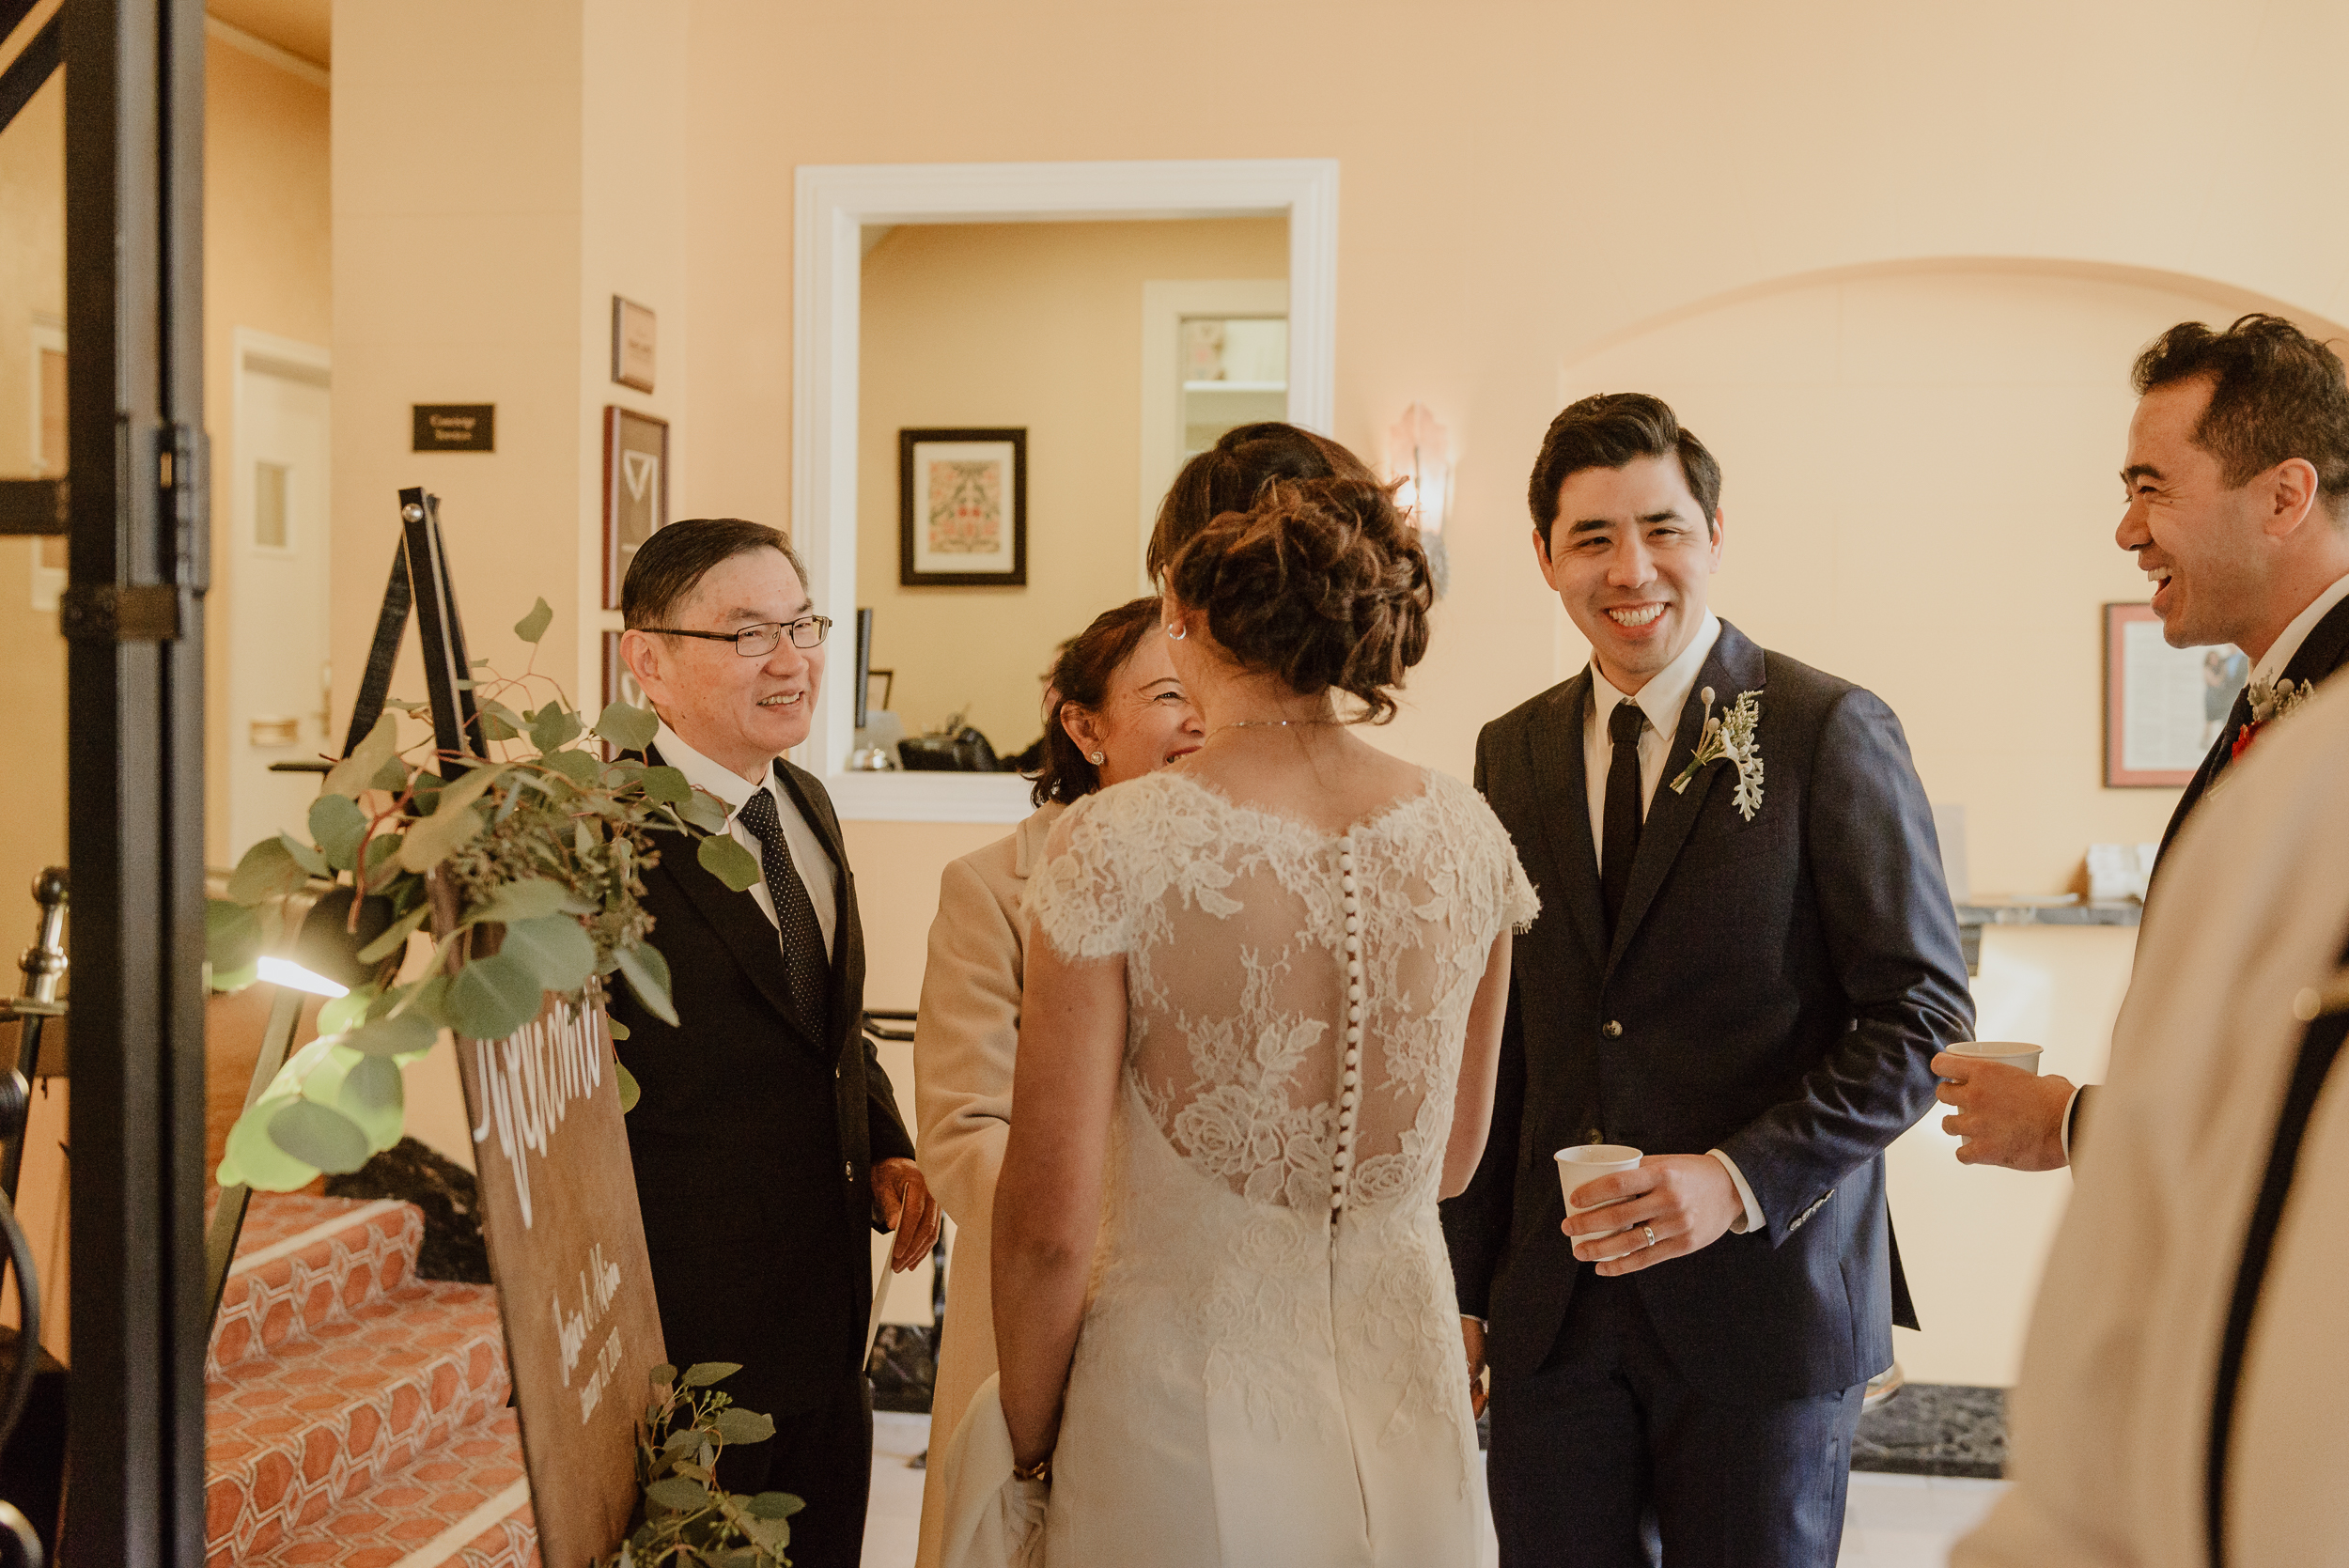 40-oakland-lake-merritt-terrace-room-wedding-vivianchen-344.jpg